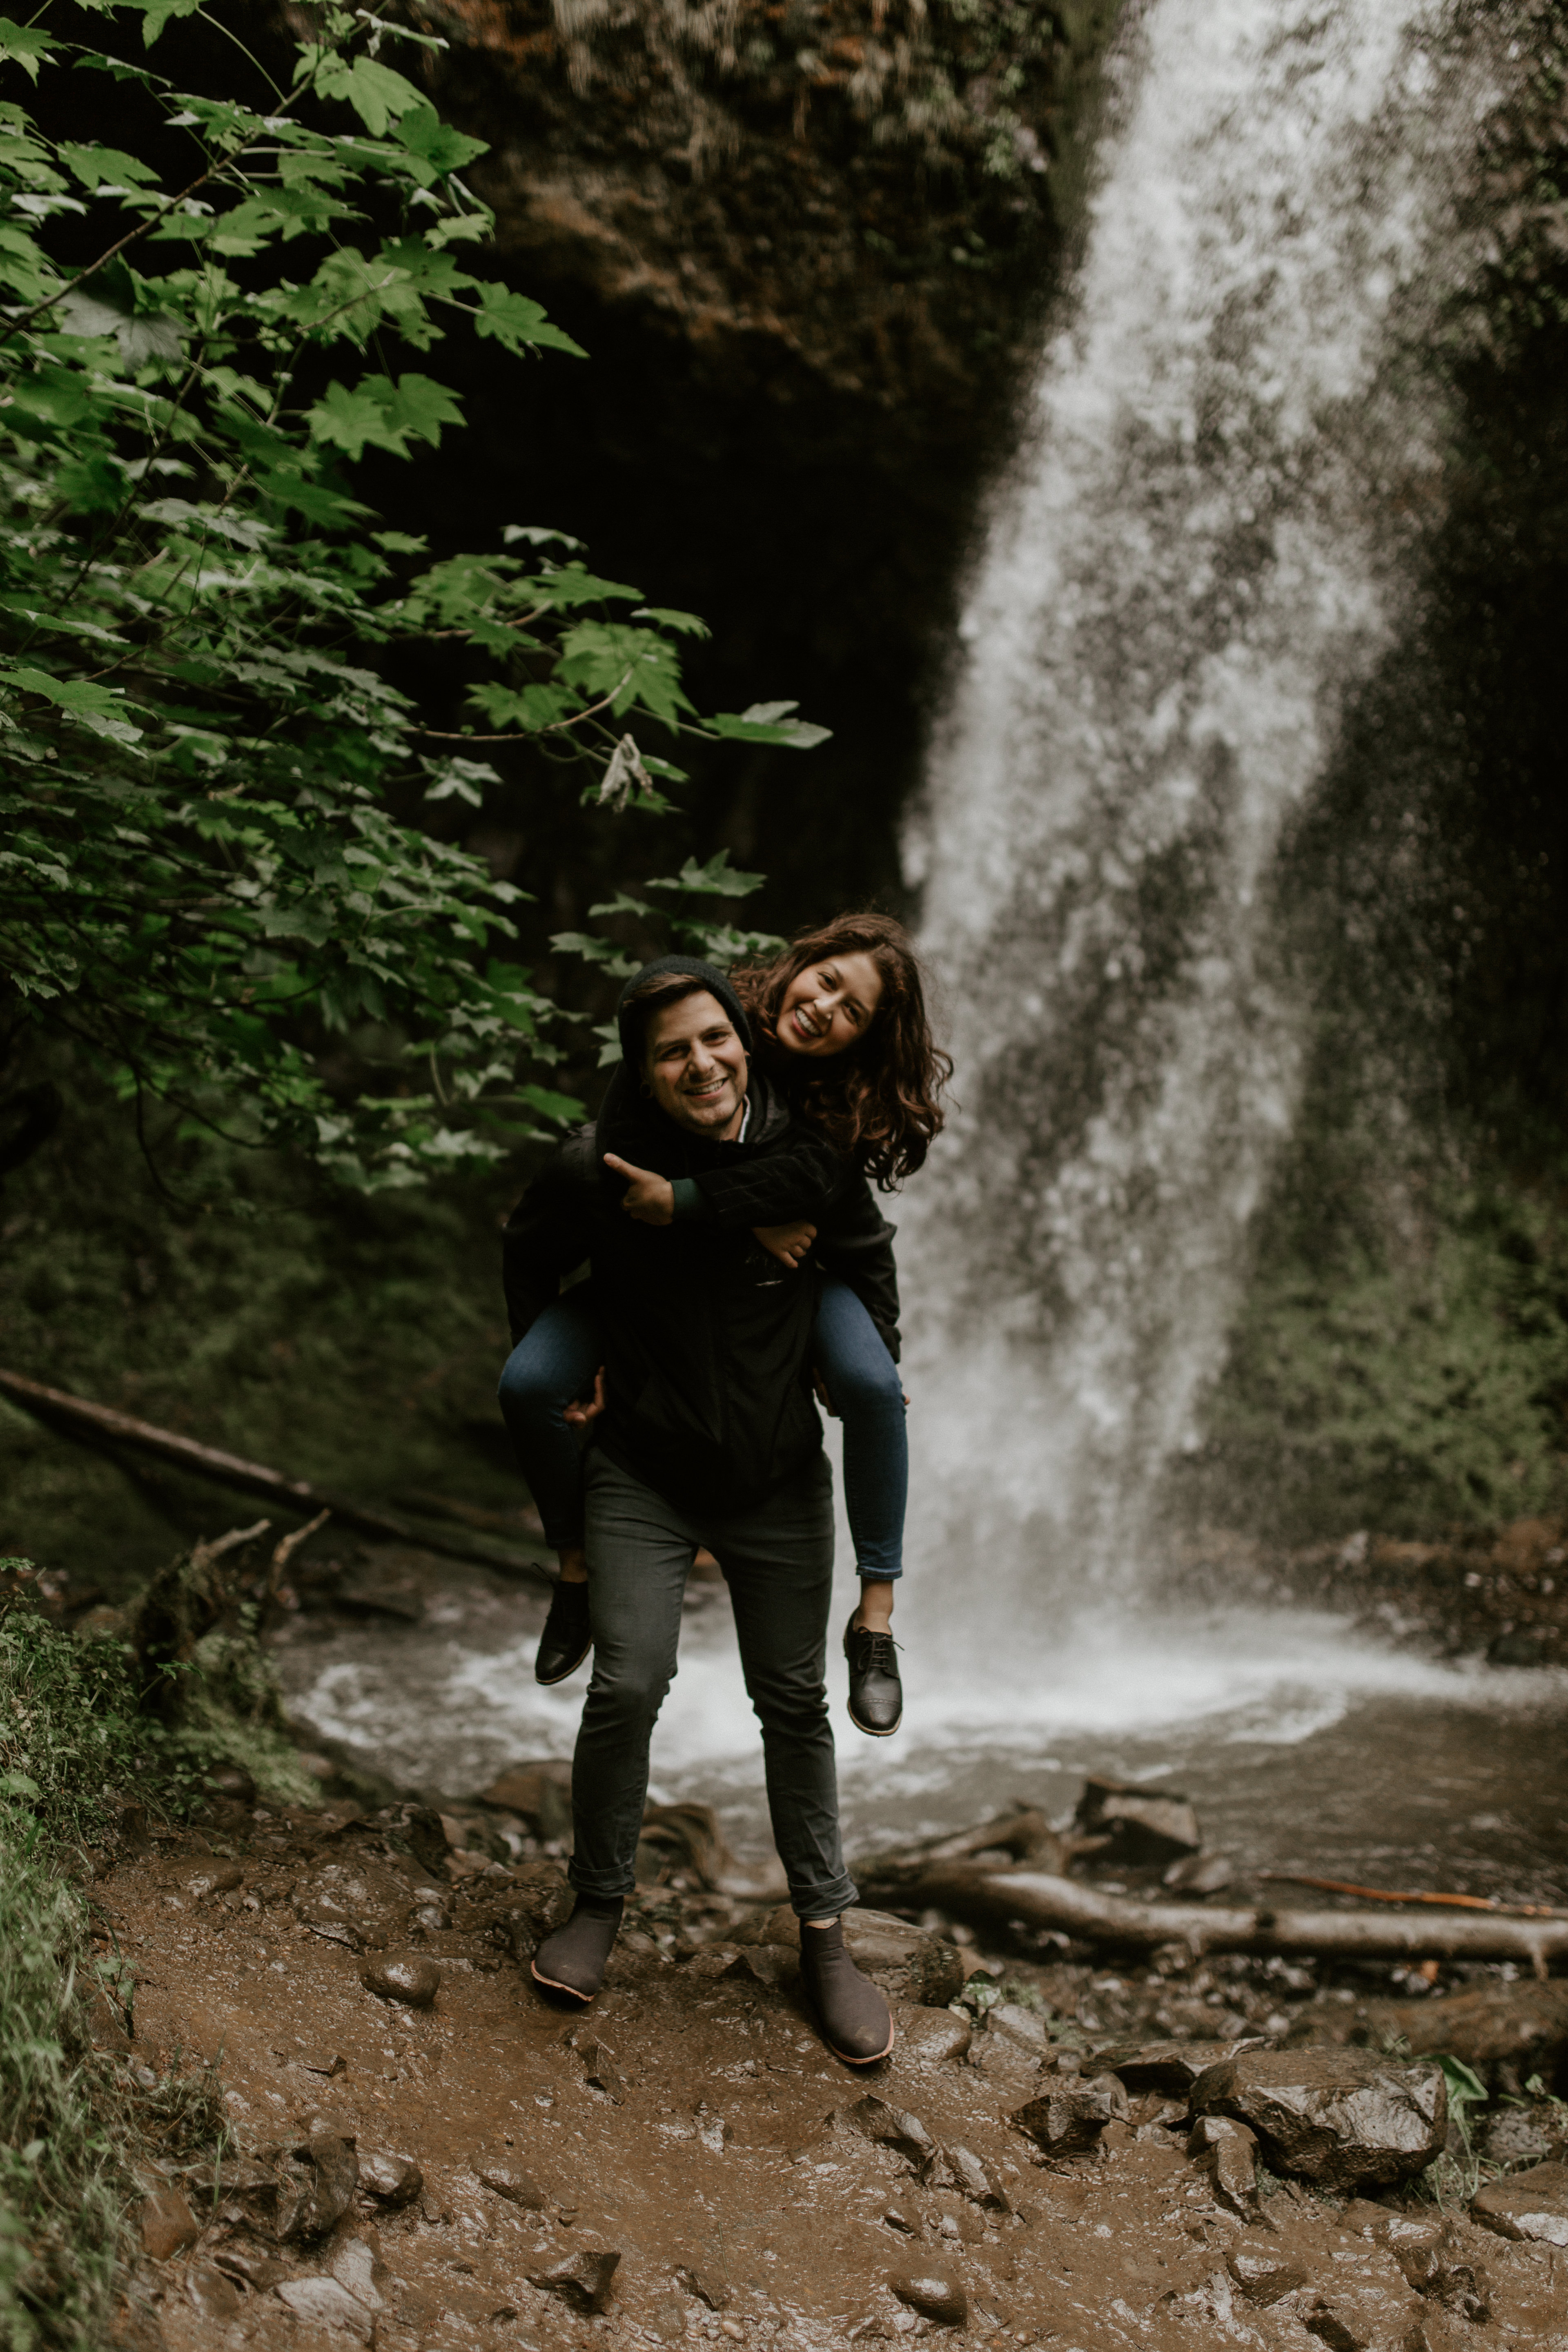 Chris gives Jasmine a piggy back ride in front of the upper falls of Latourell at the Columbia River Gorge in Oregon for her Oregon Adventure. Adventure photography in Portland Oregon by Sienna Plus Josh.